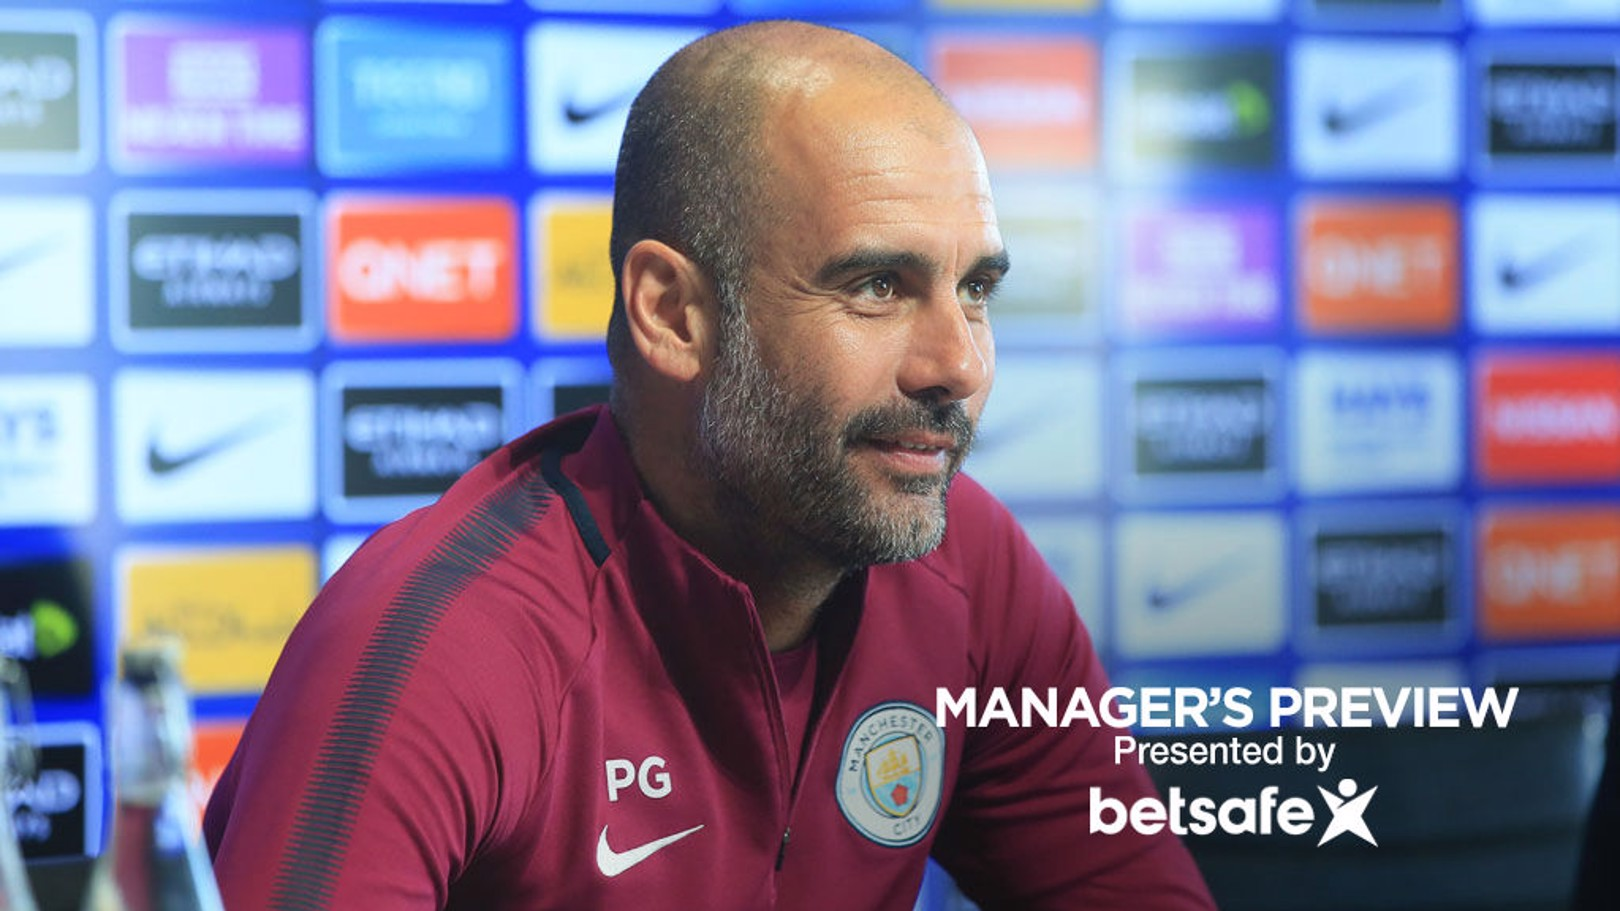 PREVIEW: Pep Guardiola addresses the media ahead of the Leicester City game.